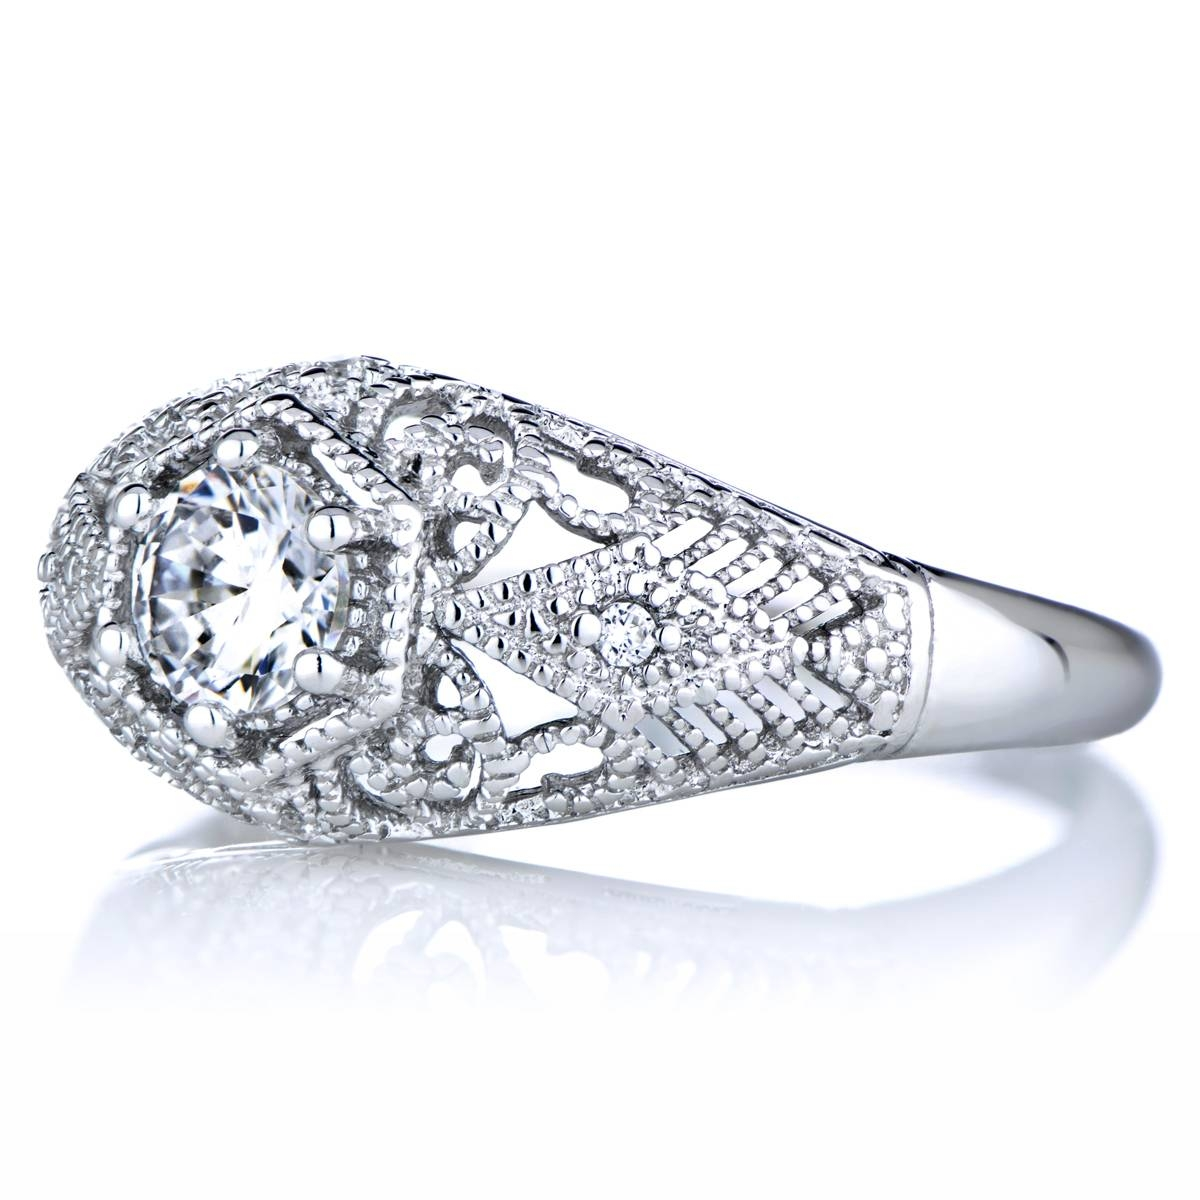 0.5 Ct Cz And Silvertone Vintage Style Wedding Ring Within Antique Inspired Wedding Rings (Gallery 6 of 15)